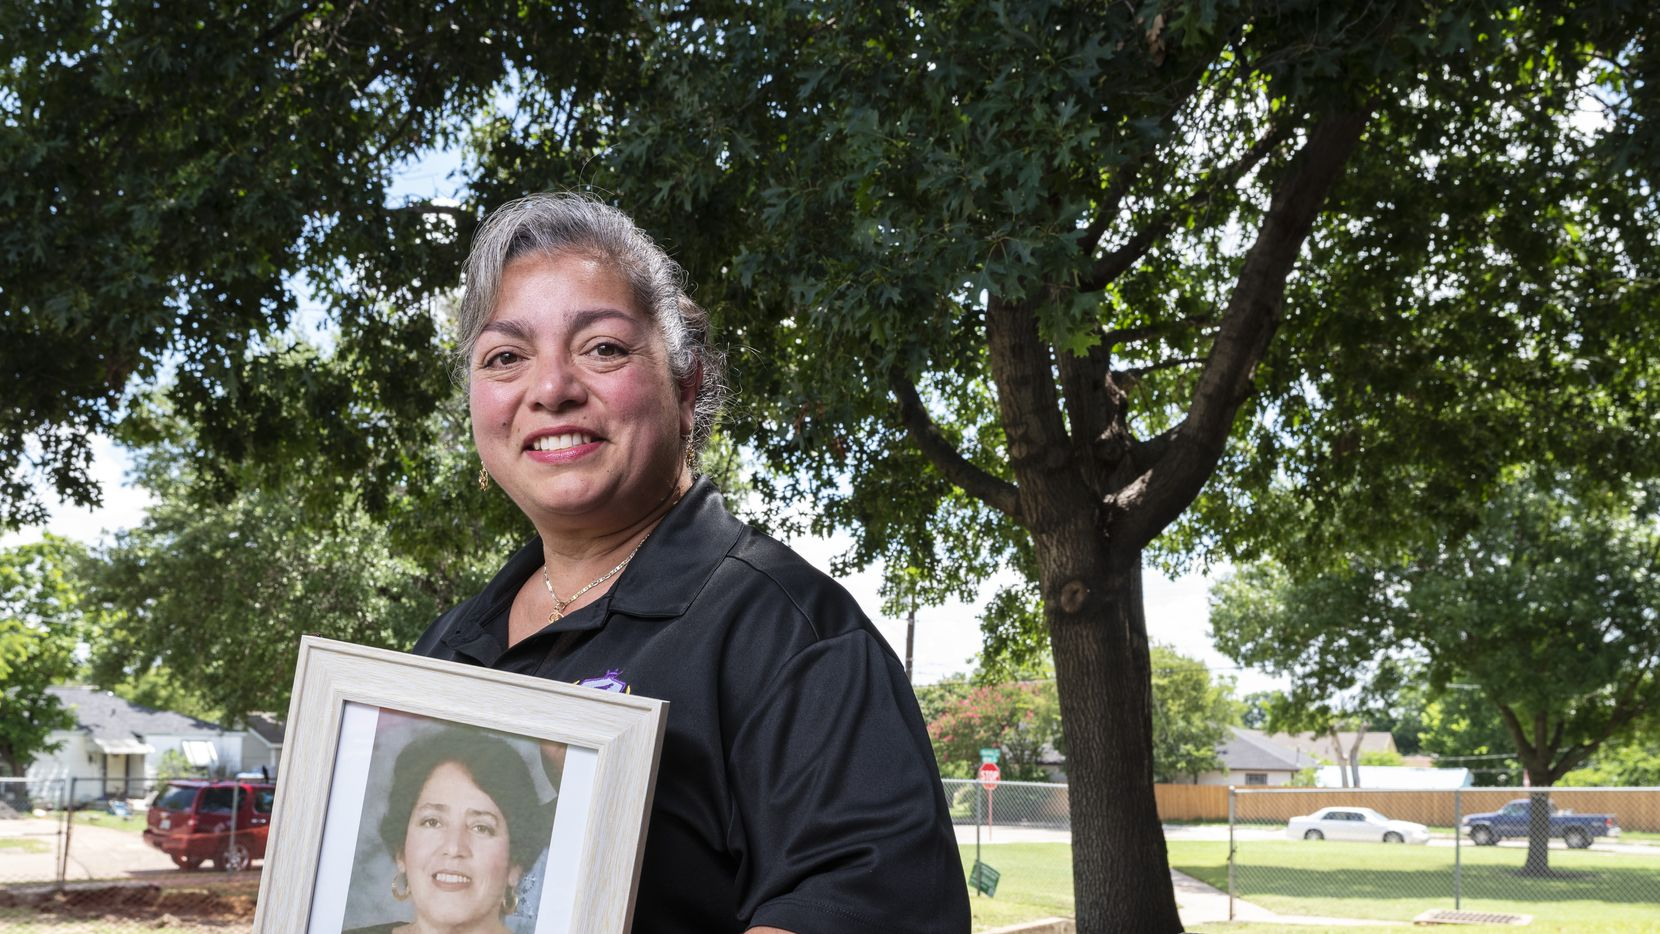 Diana C. Vargas-Martínez, 48, an instructional coach at Leila P. Cowart Elementary, with a portrait of her mother Marisela Vargas near a tree she planted with her mom back in 1992, outside the school in Dallas, on Thursday, July 01, 2021.